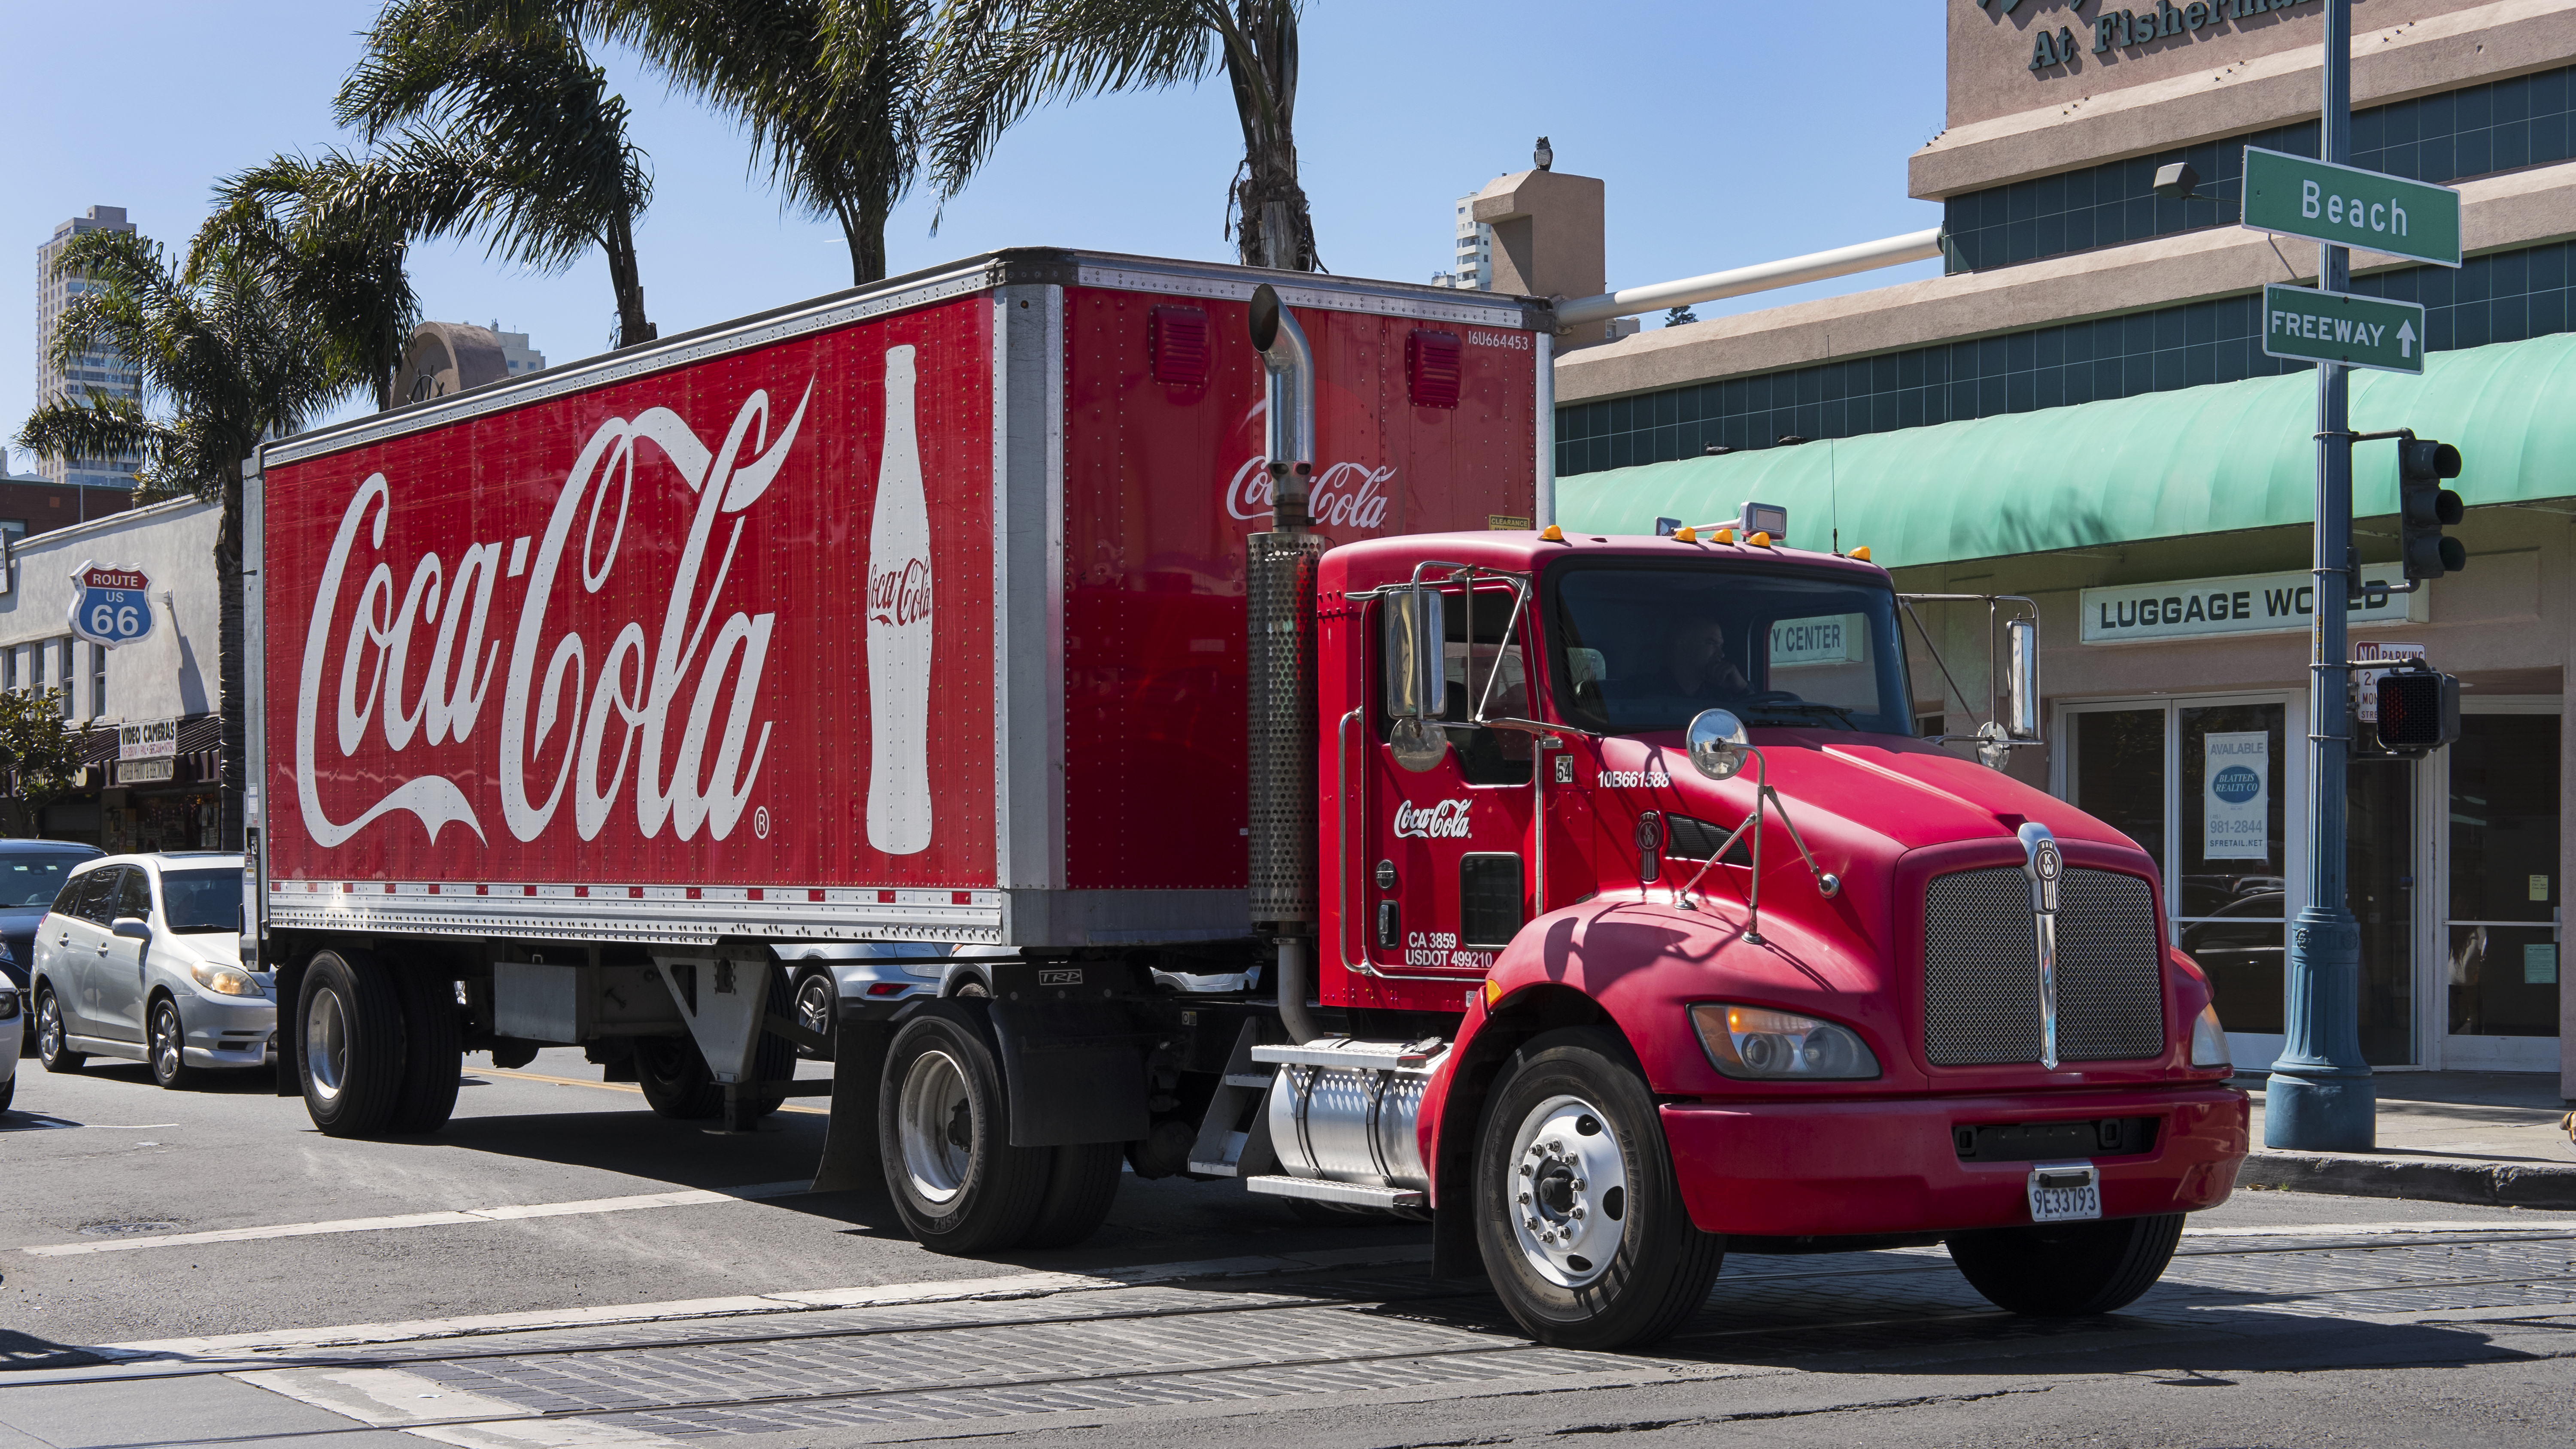 San Francisco, California, USA - September 22, 2017: famous red large Coca Cola truck stopped on a road that goes towards The Fisherman's Wharf